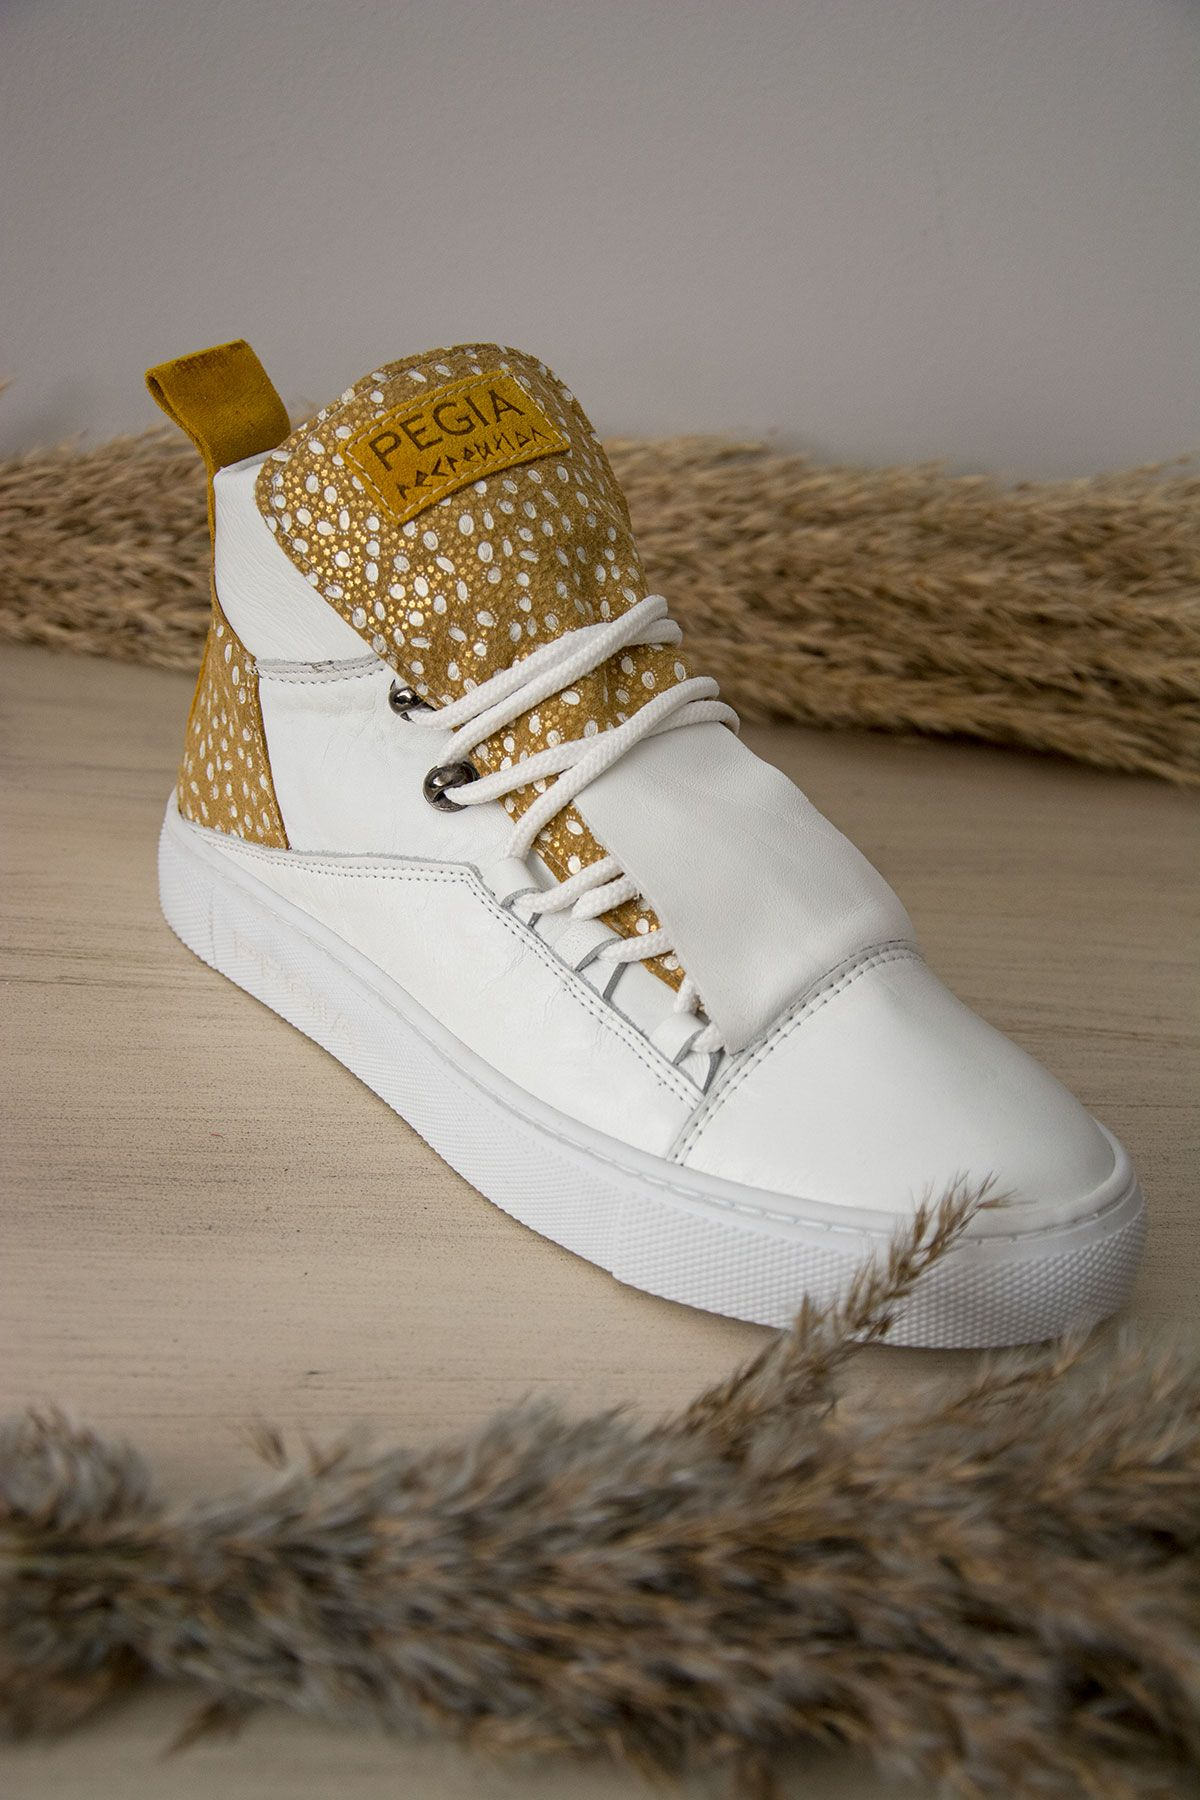 Pegia Genuine Leather Women's Sneaker LA1312 Yellow